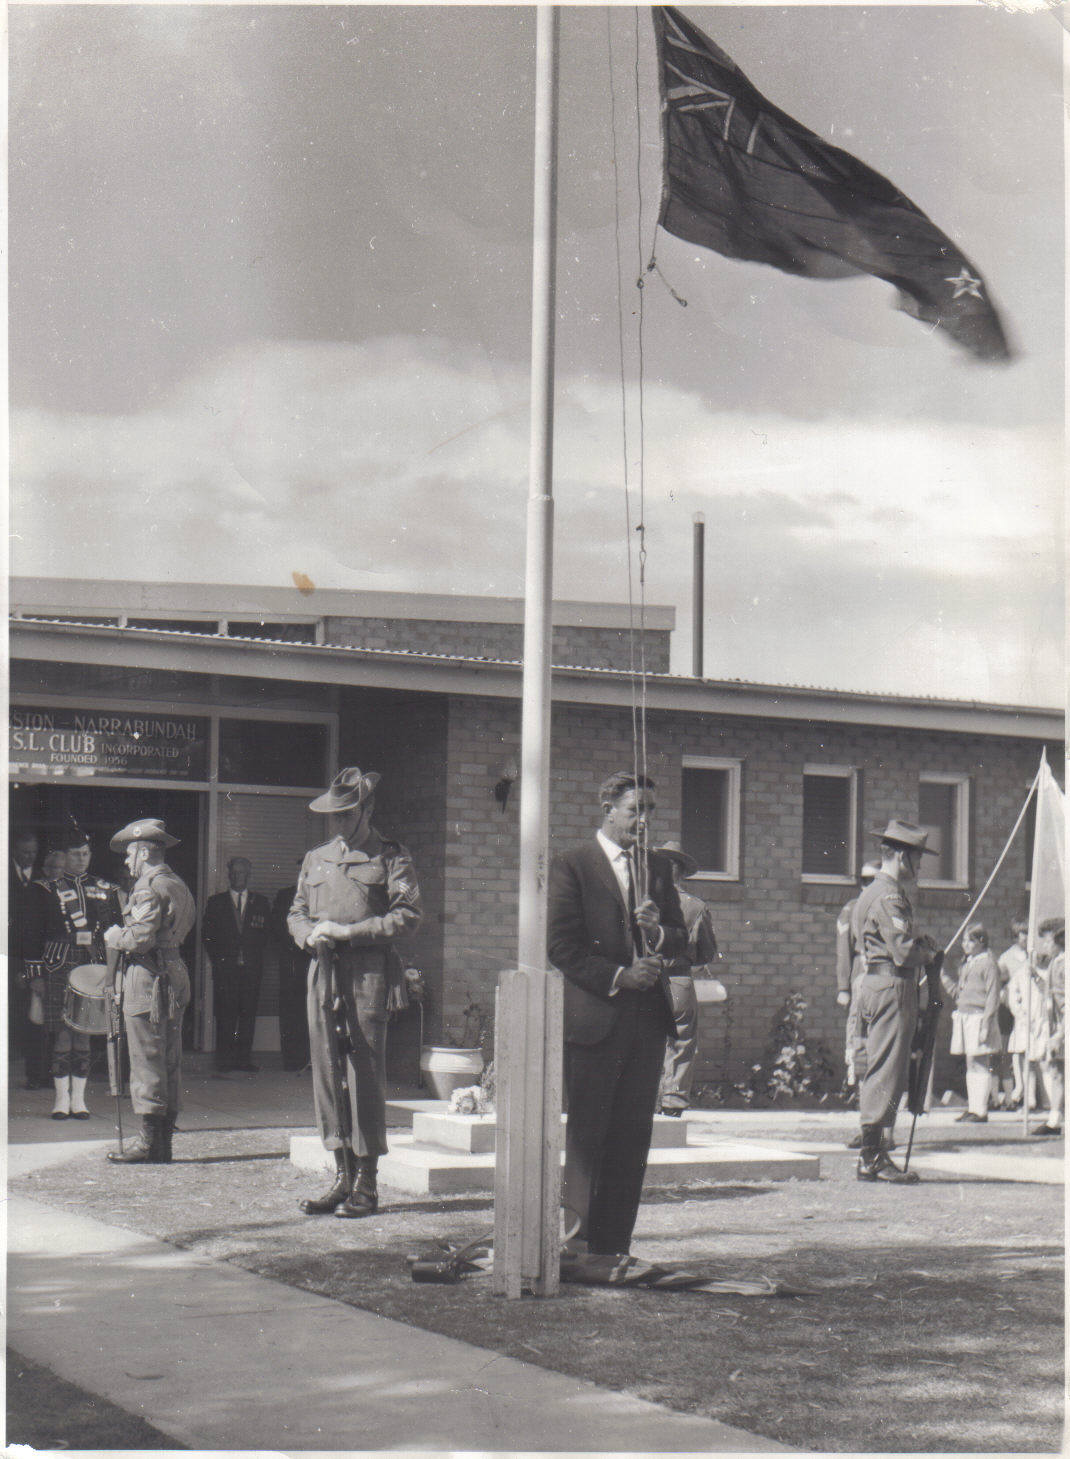 1968 ANZAC Day at Kingston Narrabundah RSL - Catafalque Party - Kevin Shearwood, Ken Batup, unknown, Chris Van Reesch ( Photo Courtesy of)